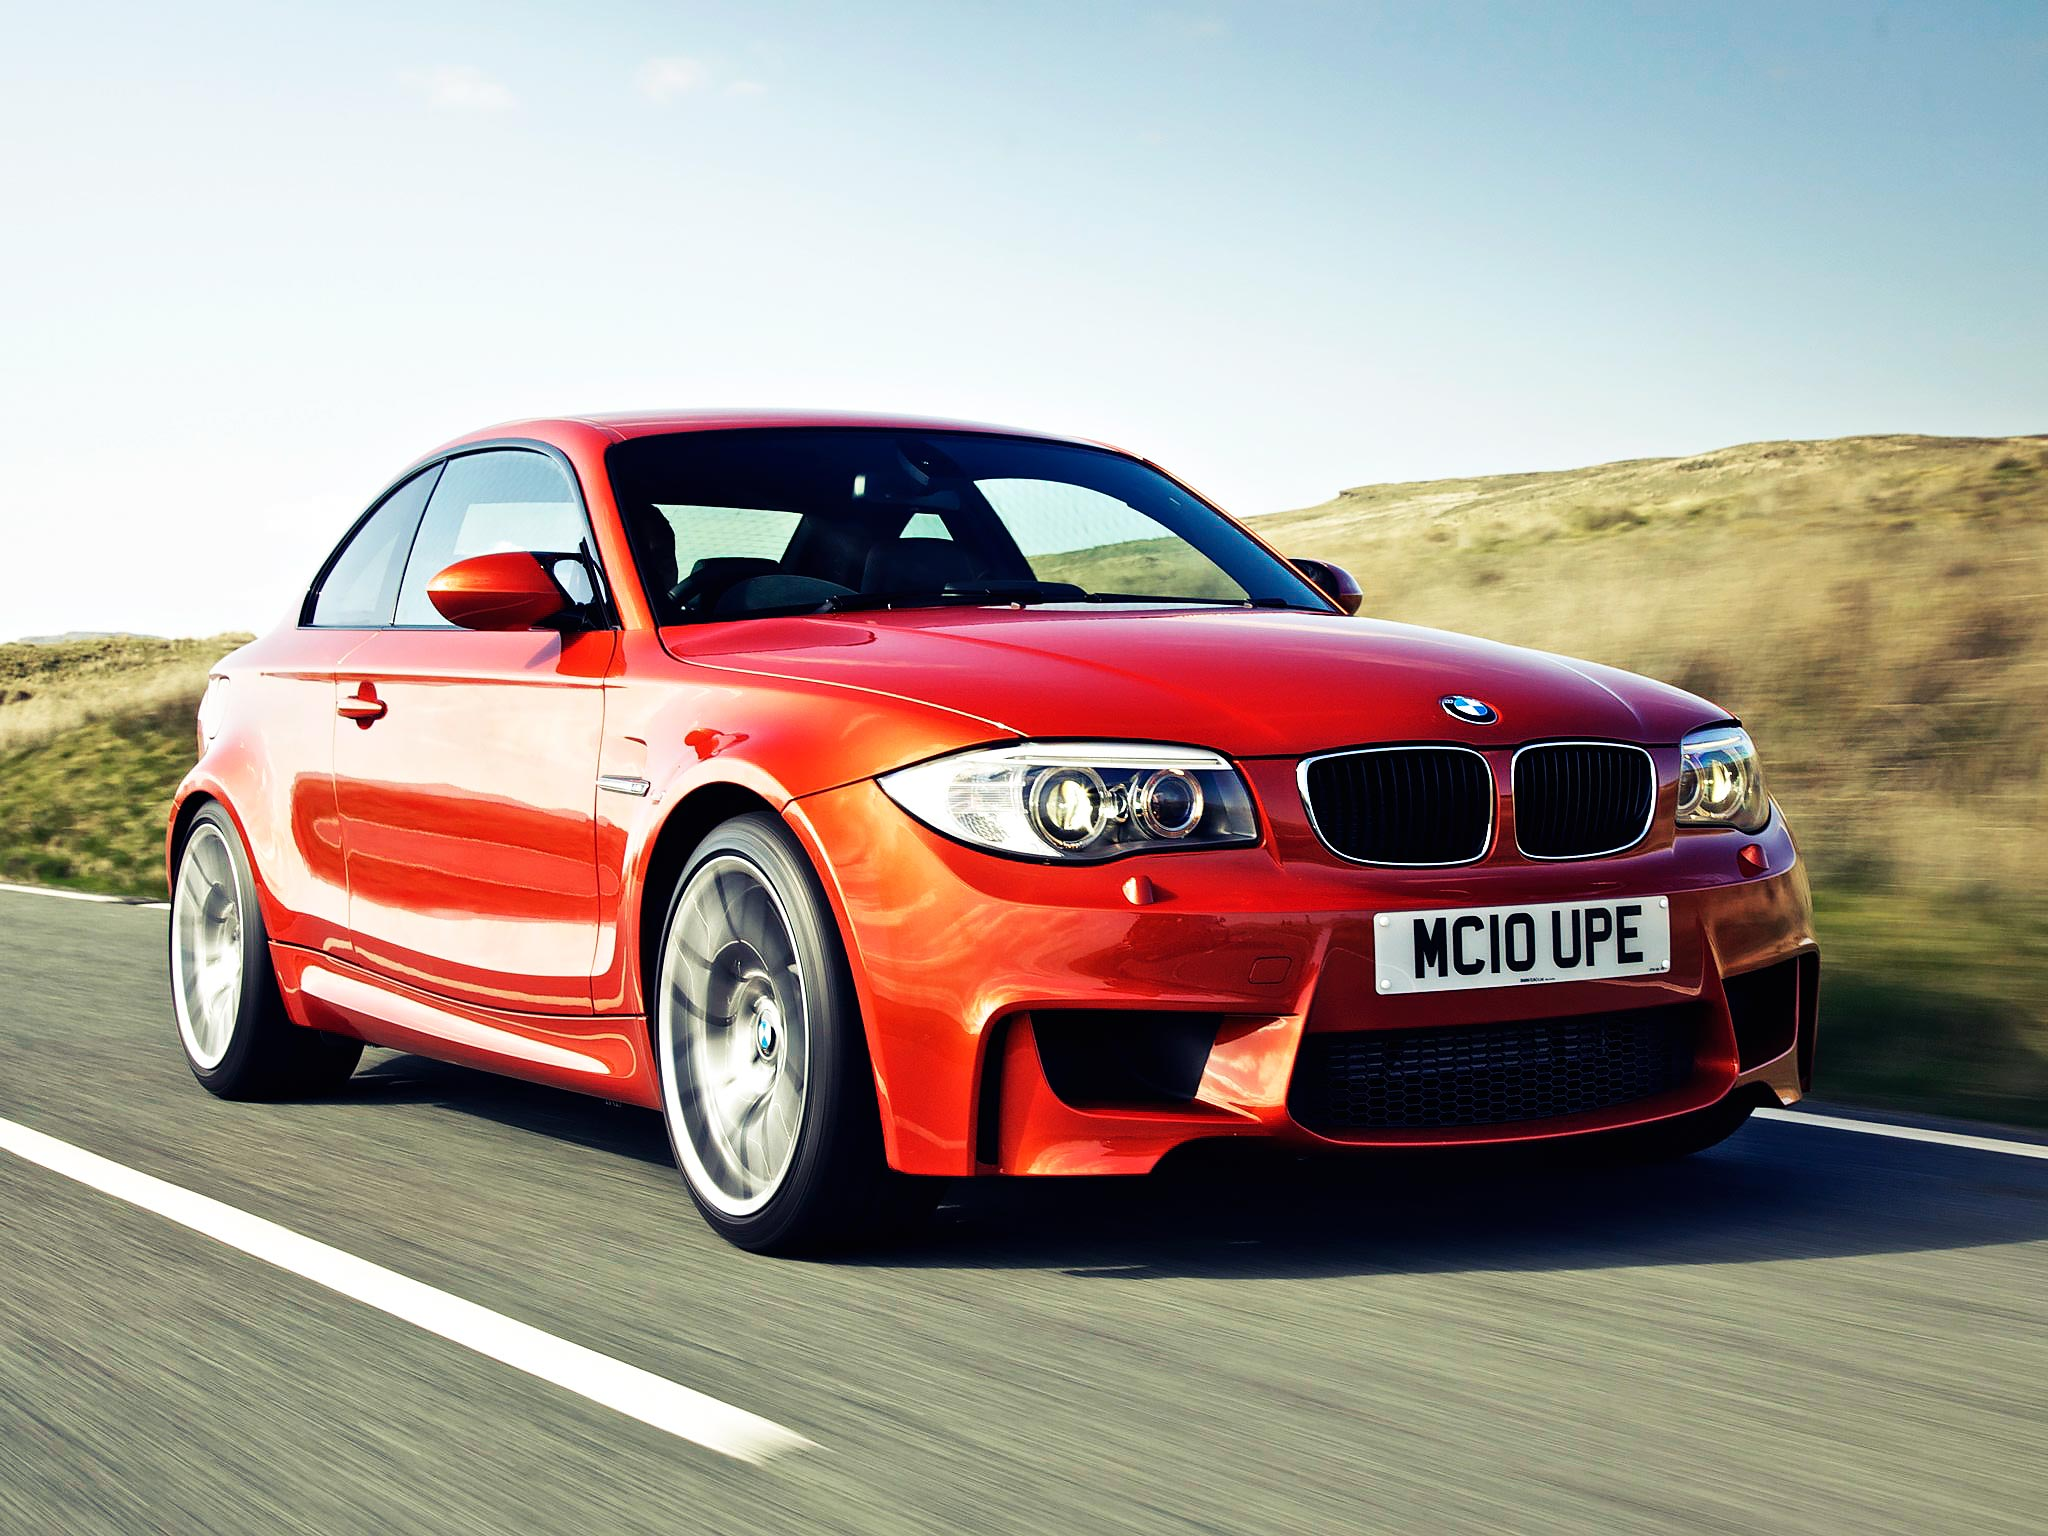 BMW 1 Series M Coupé E82 Buying Guide - Drive-My Blogs - Drive